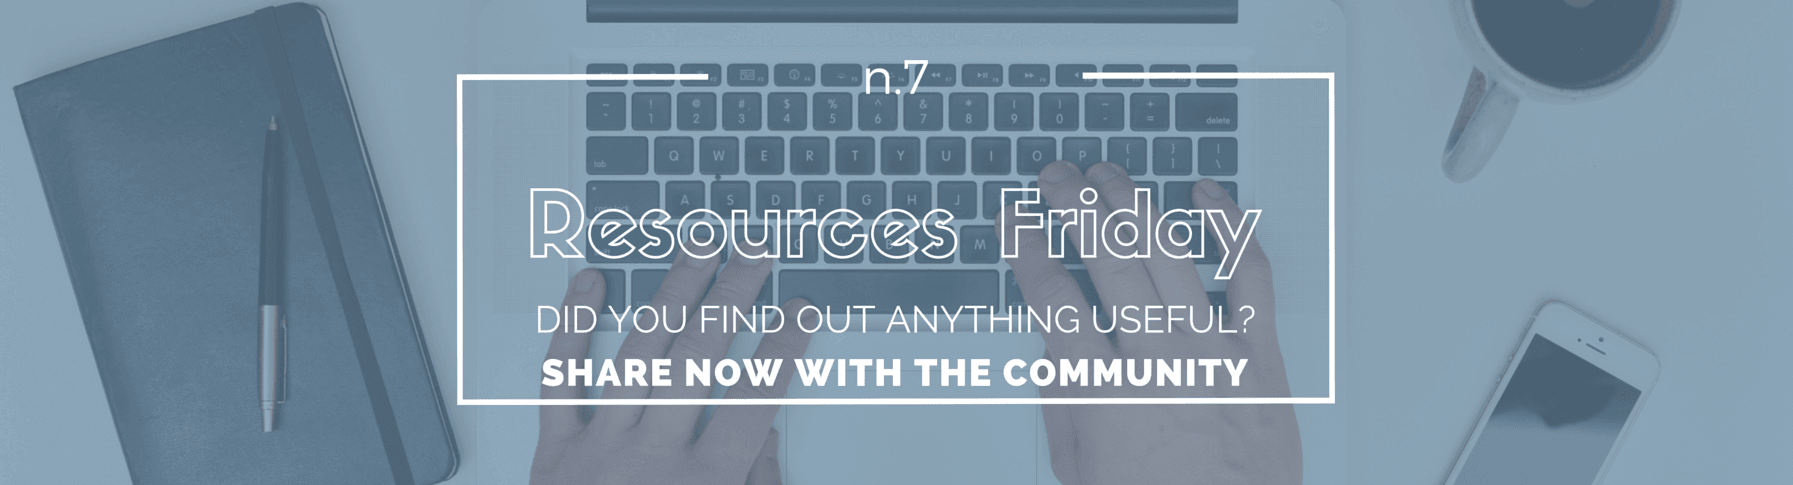 Resources Friday n.7